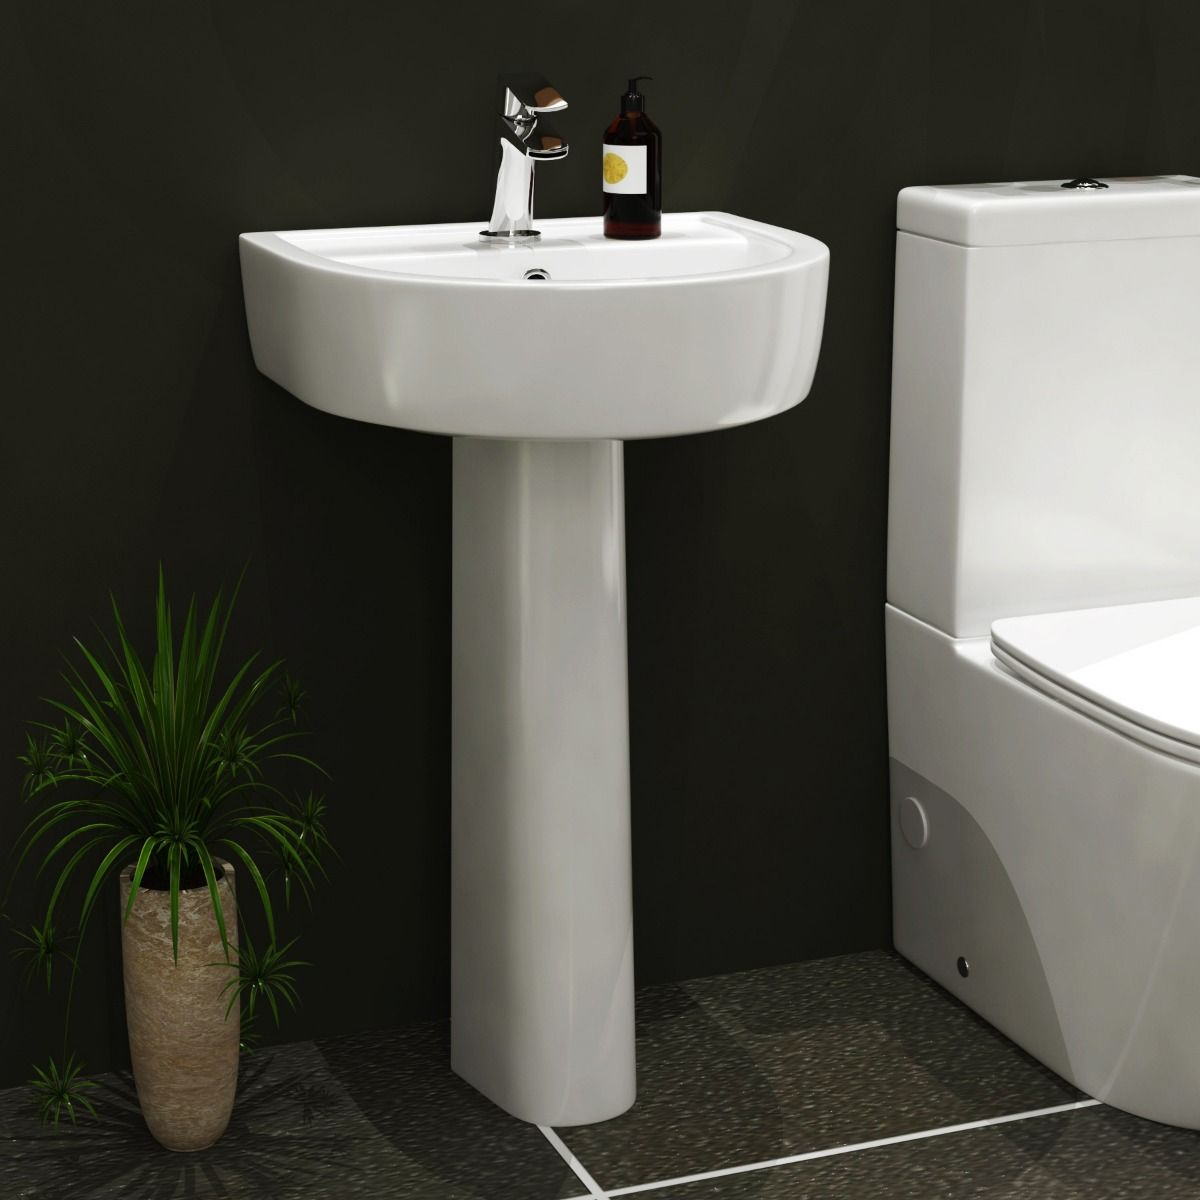 Contemporary Basins - Buying Guide!